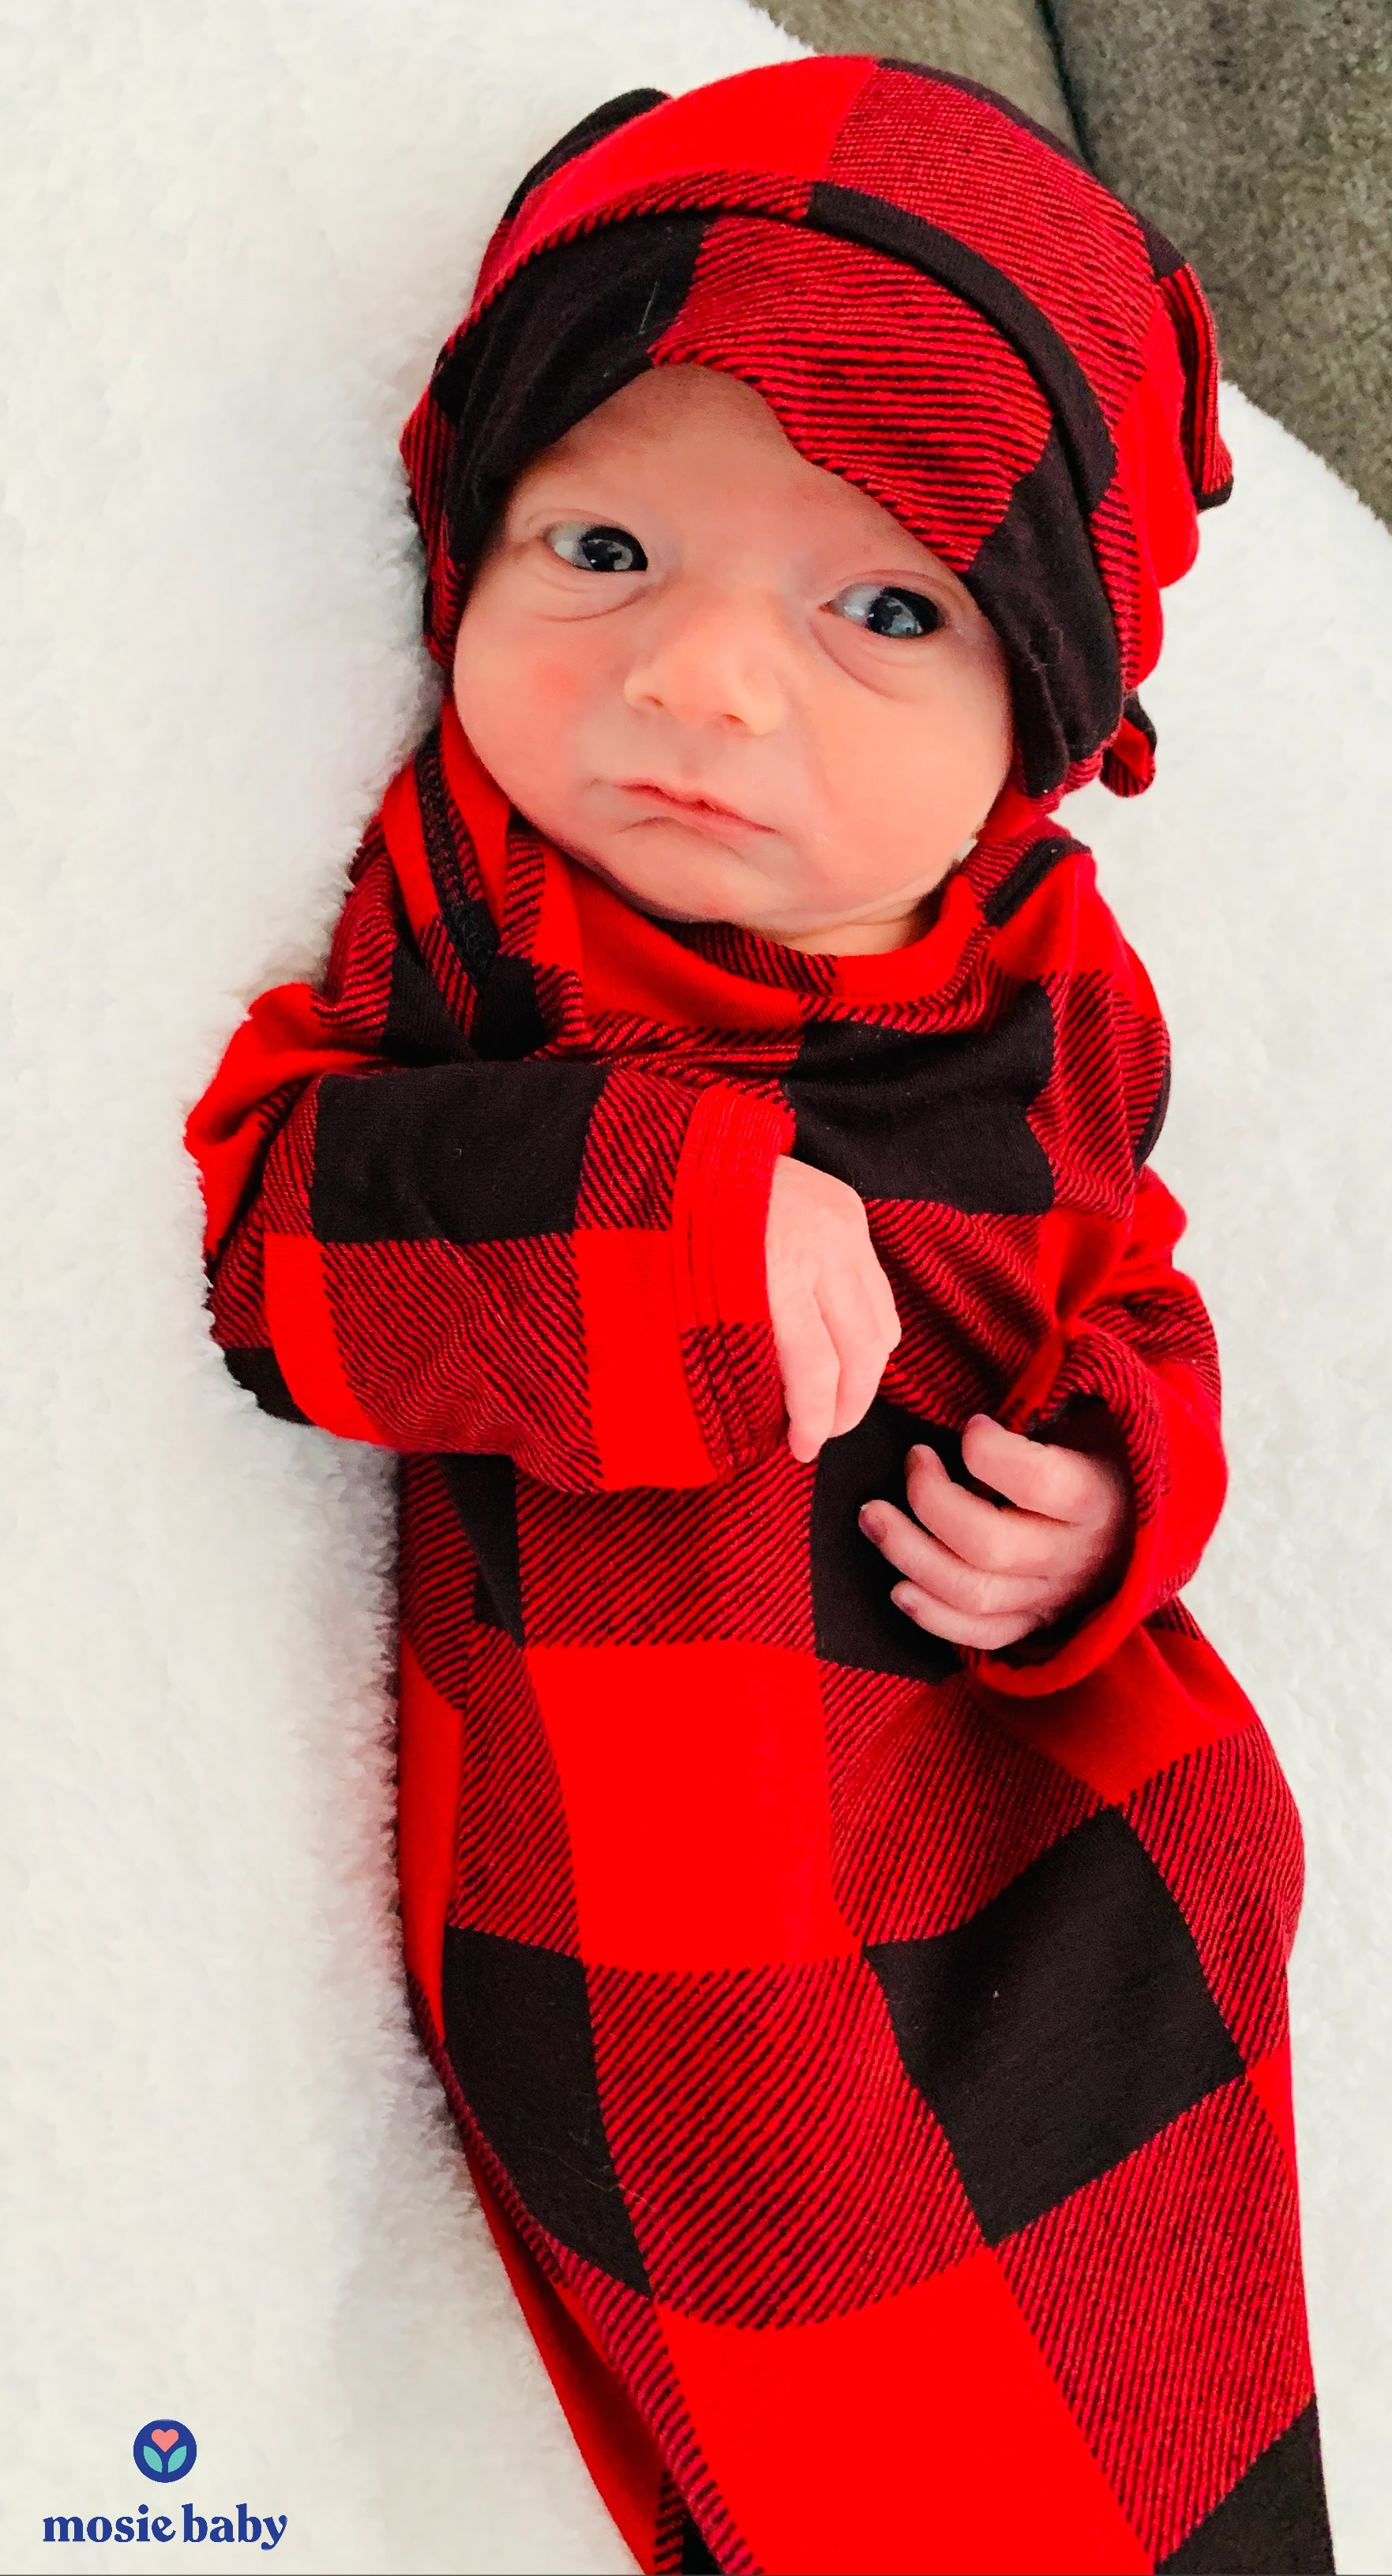 newborn mosie baby in a plaid outfit